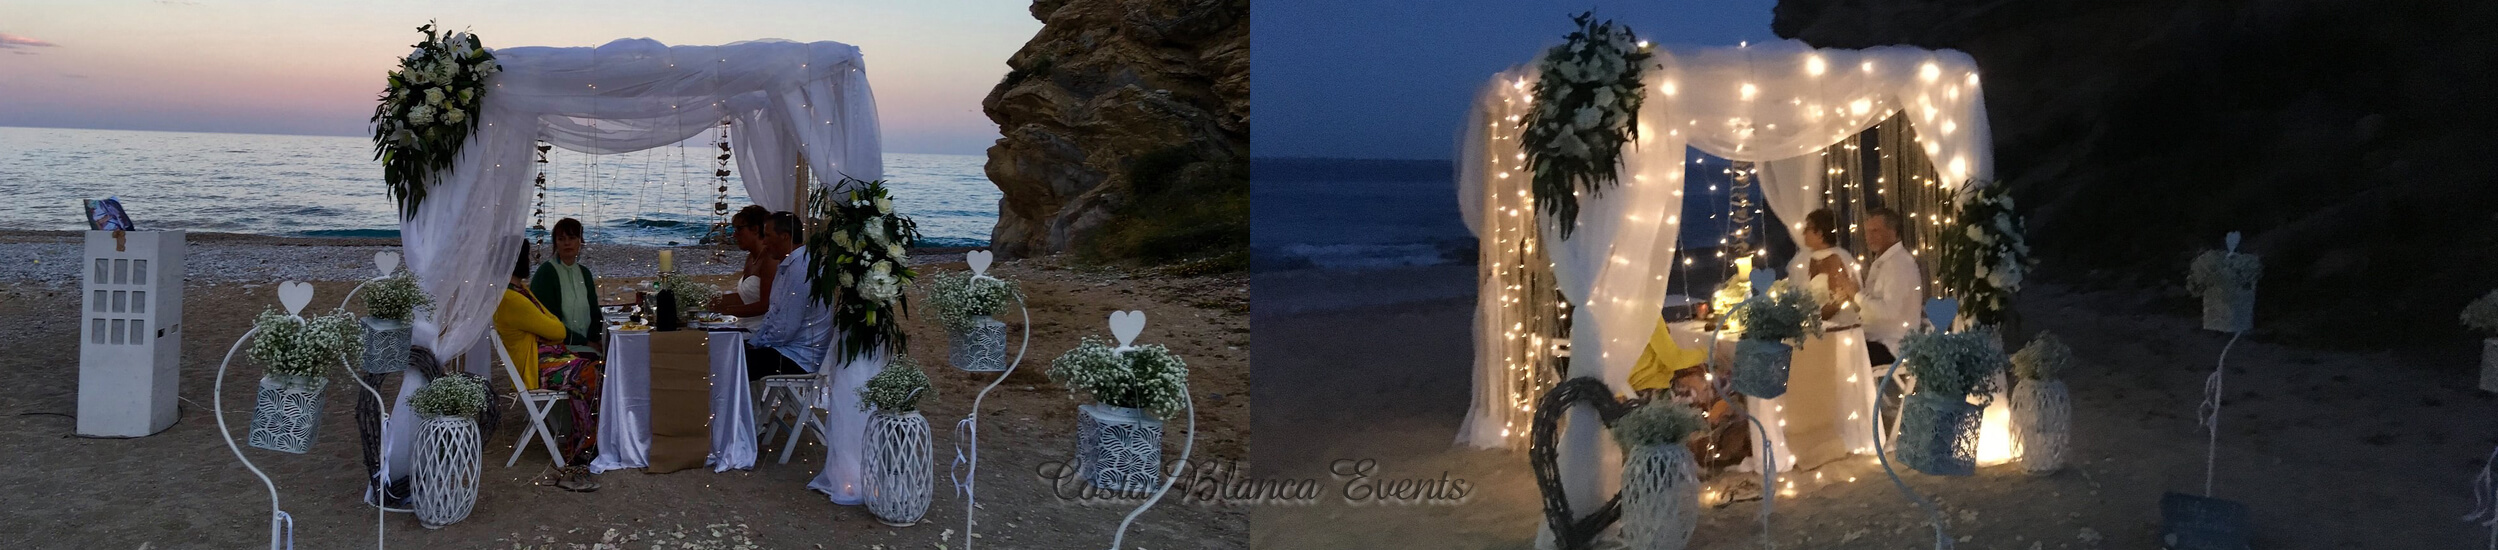 Beach wedding under the stars, could this be something for you?